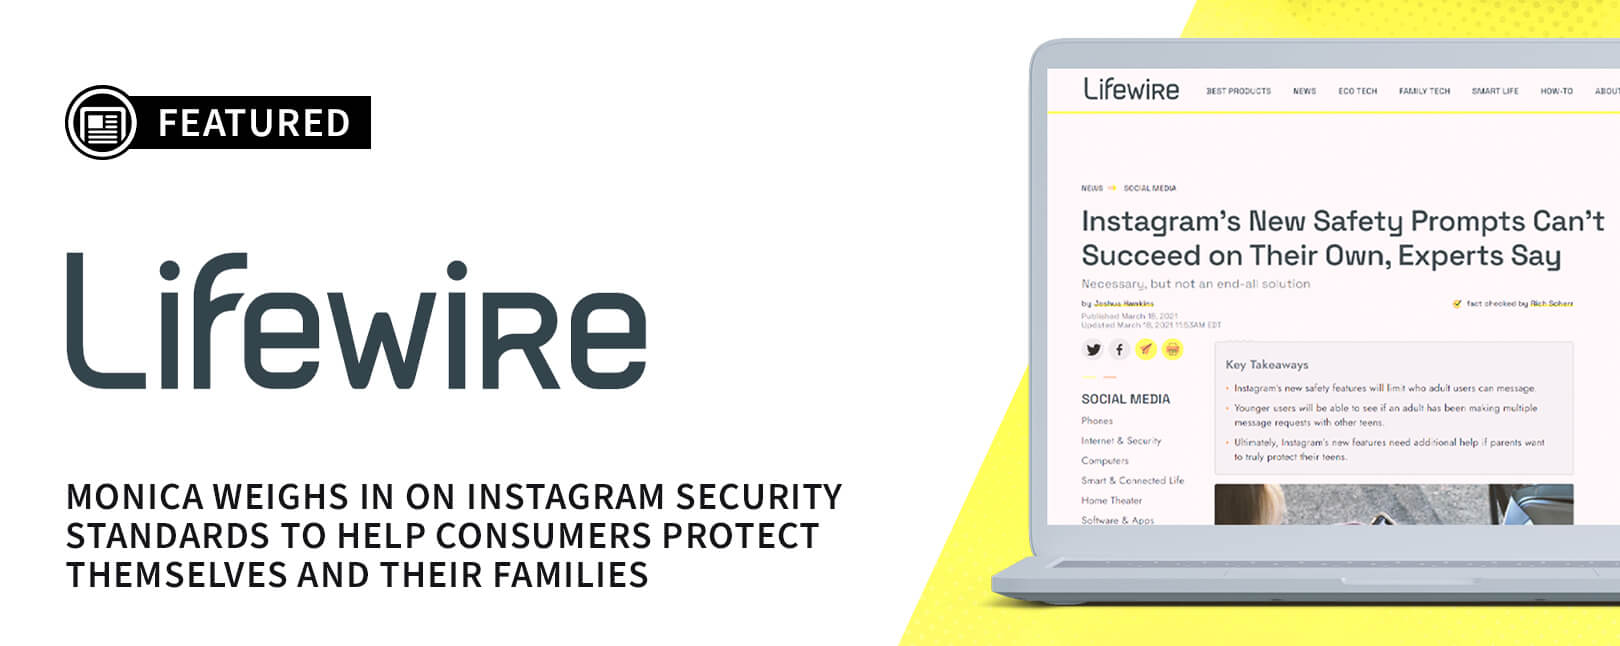 Chargebacks911® COO Offers Instagram Security Info for Lifewire